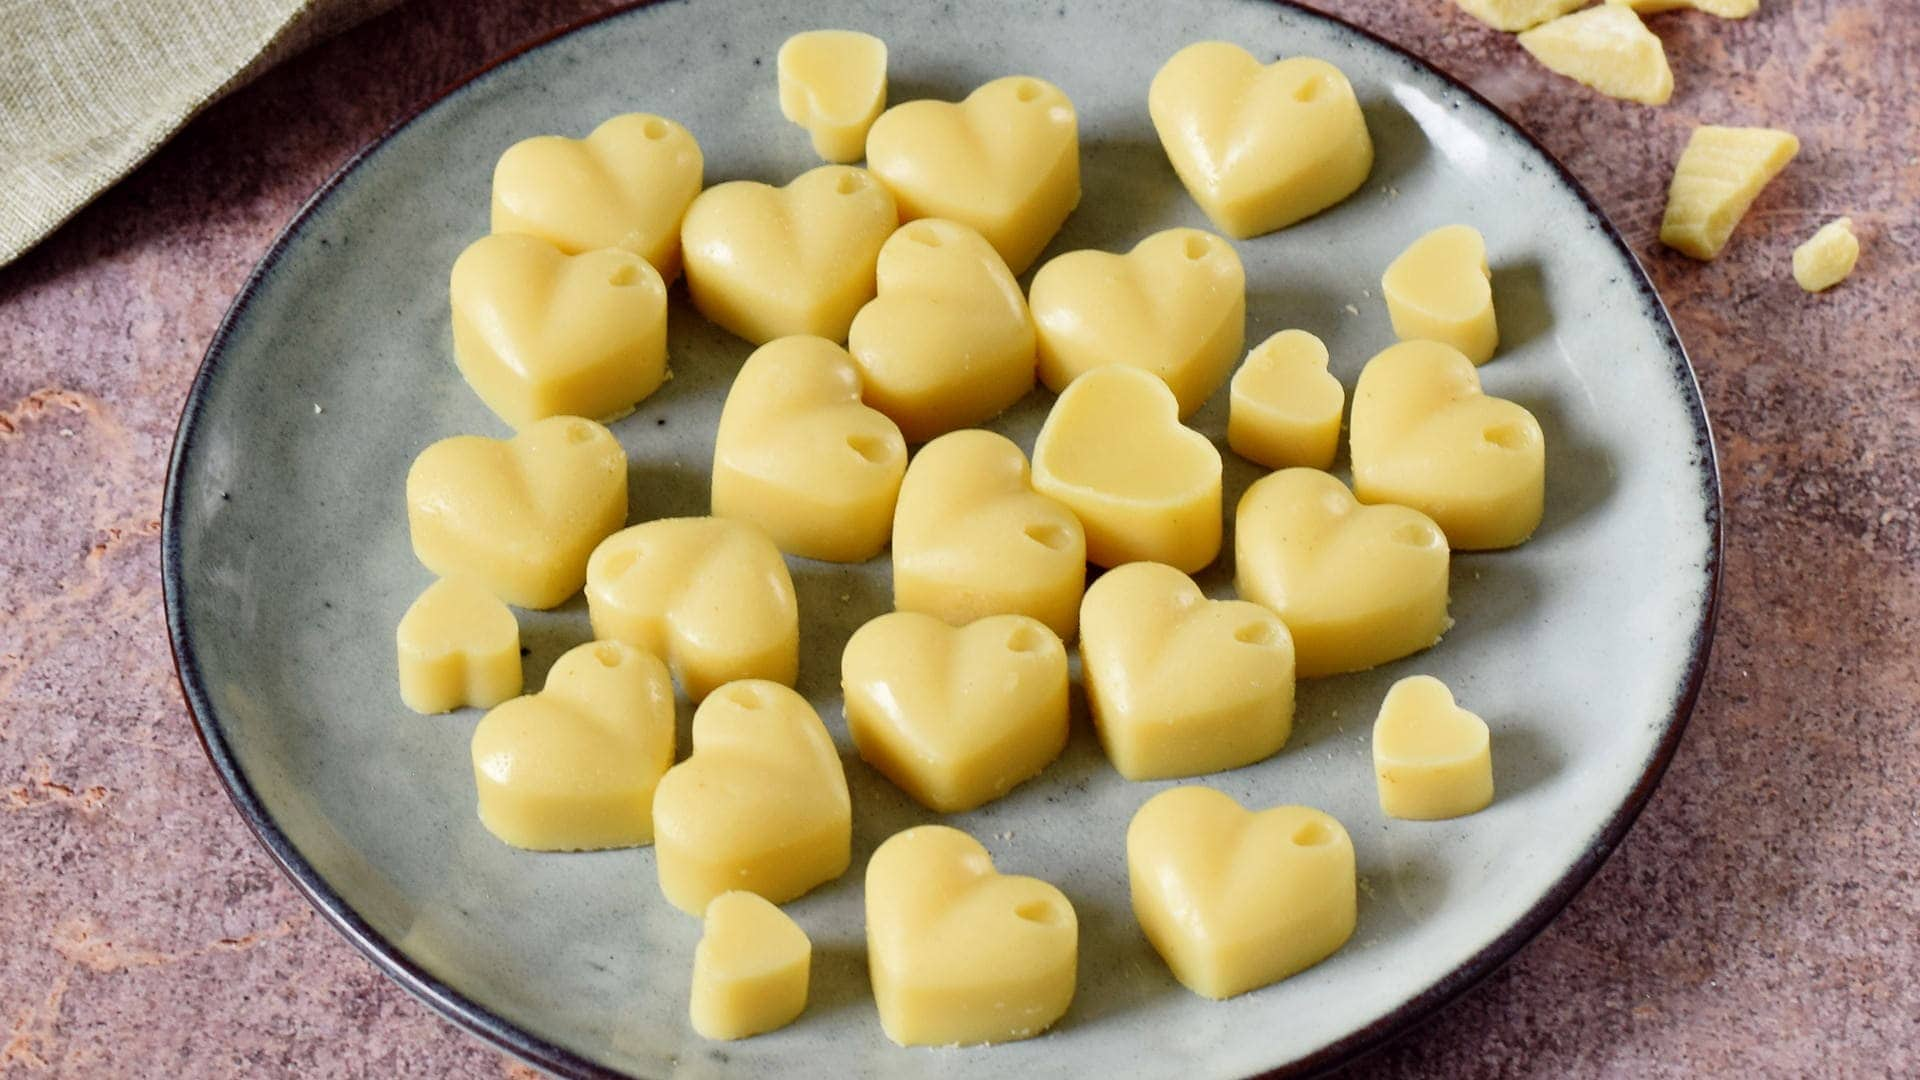 horizontal view of white chocolate hearts on a plate